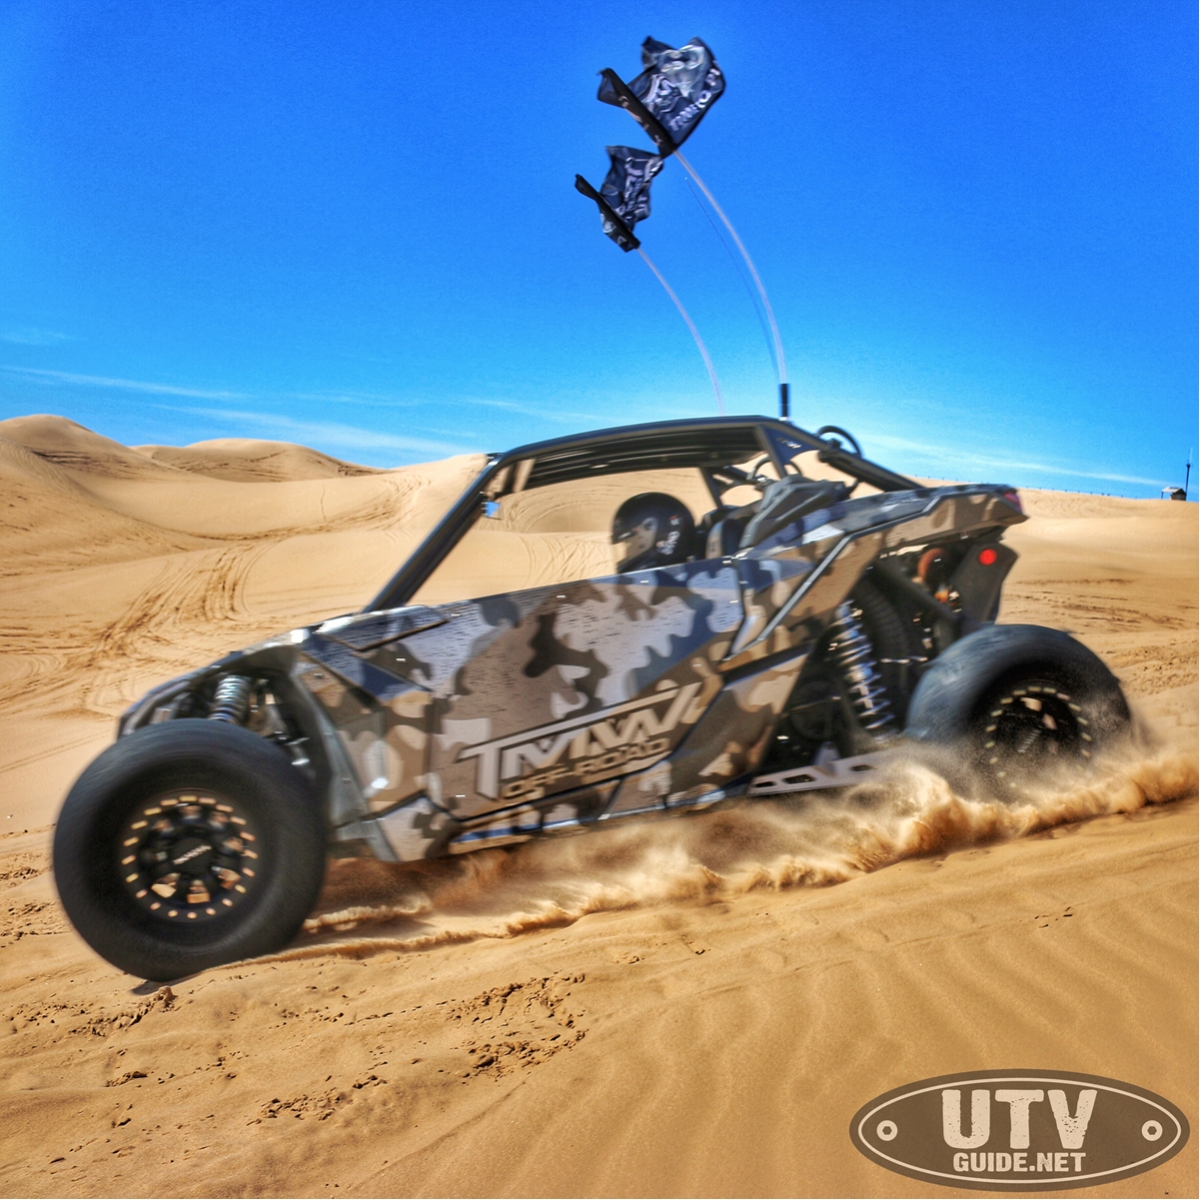 shock therapy ride improvement system for can am maverick. Black Bedroom Furniture Sets. Home Design Ideas